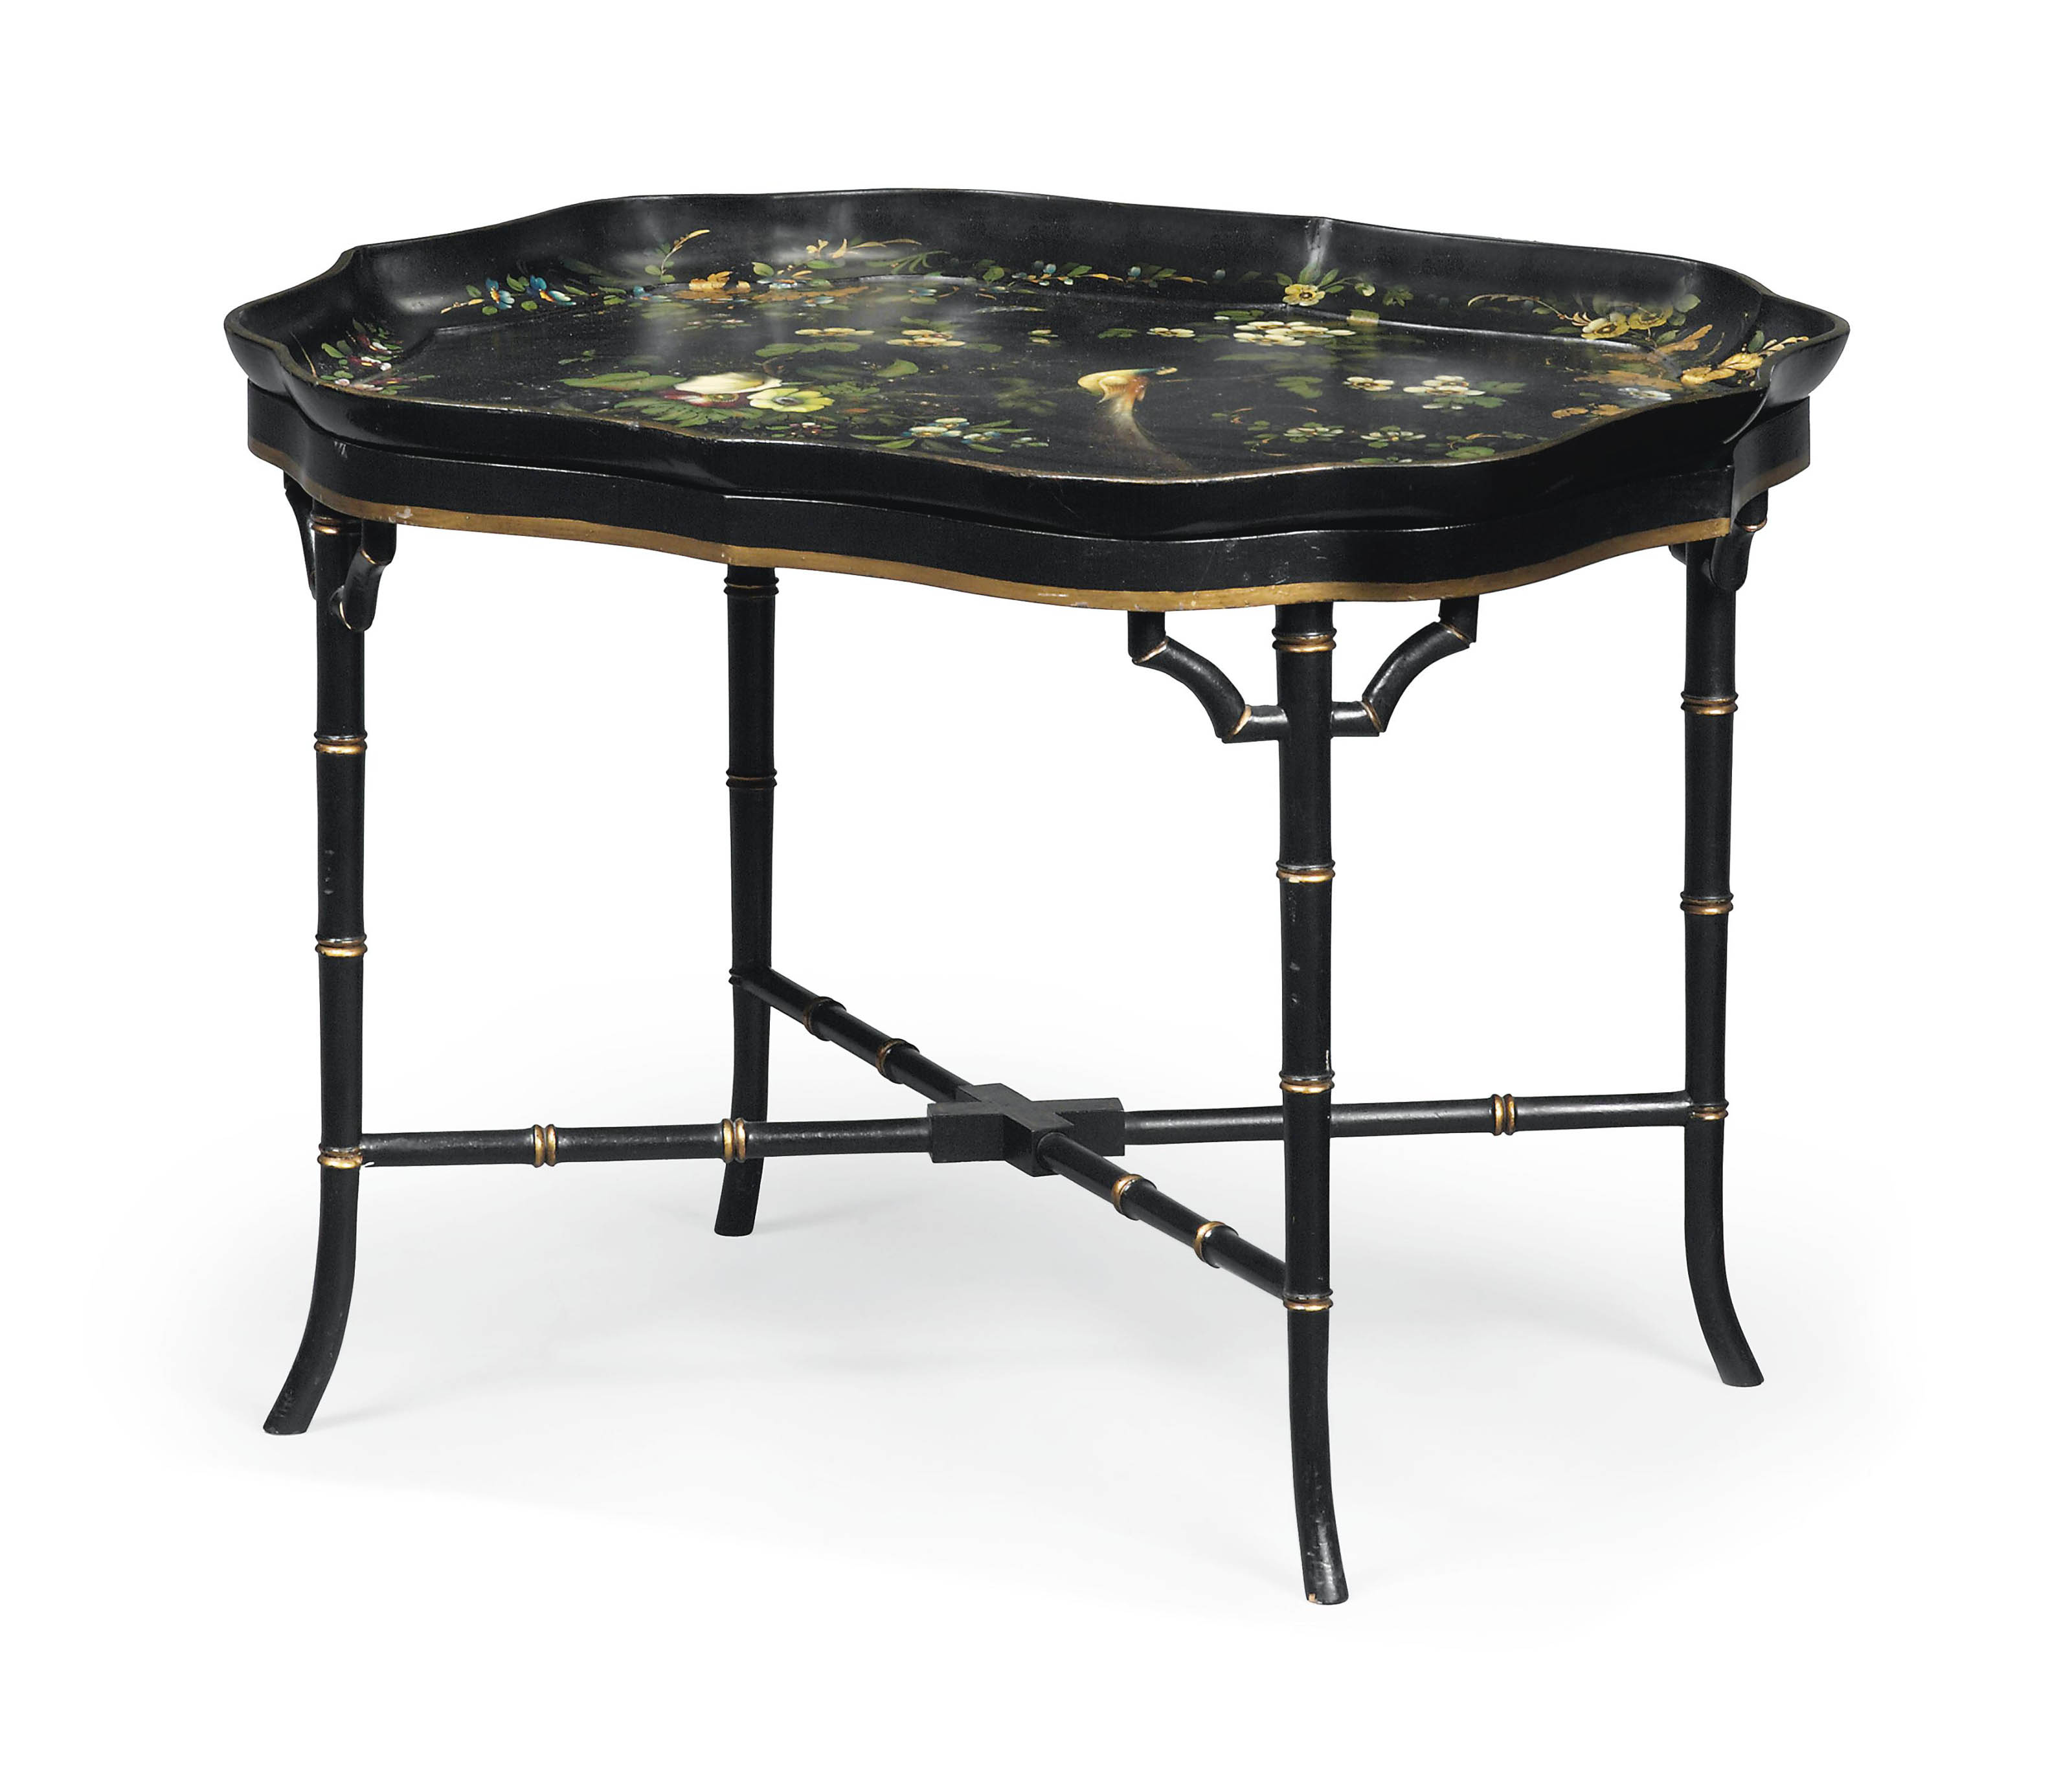 A REGENCY BLACK JAPANNED AND PARCEL-GILT PAPIER-MACHE TRAY ON LATER STAND